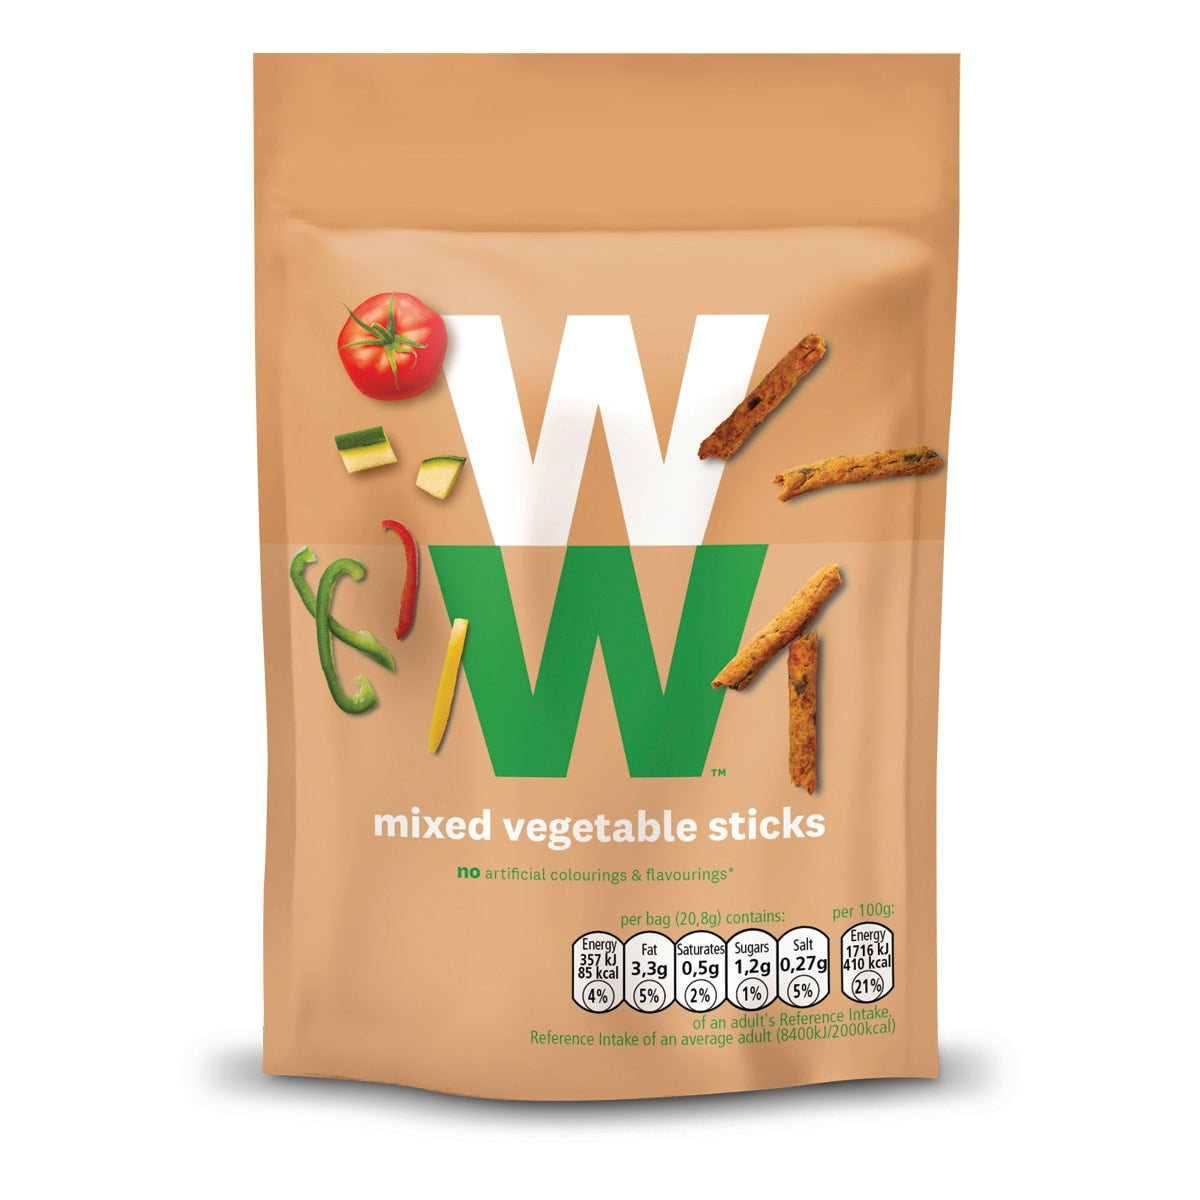 WW Mixed Vegetable Sticks, made with tomato, peppers, courgette and aubergine with extra virgin olive oil, crunchy, 2 SmartPoints values, suitable for vegans